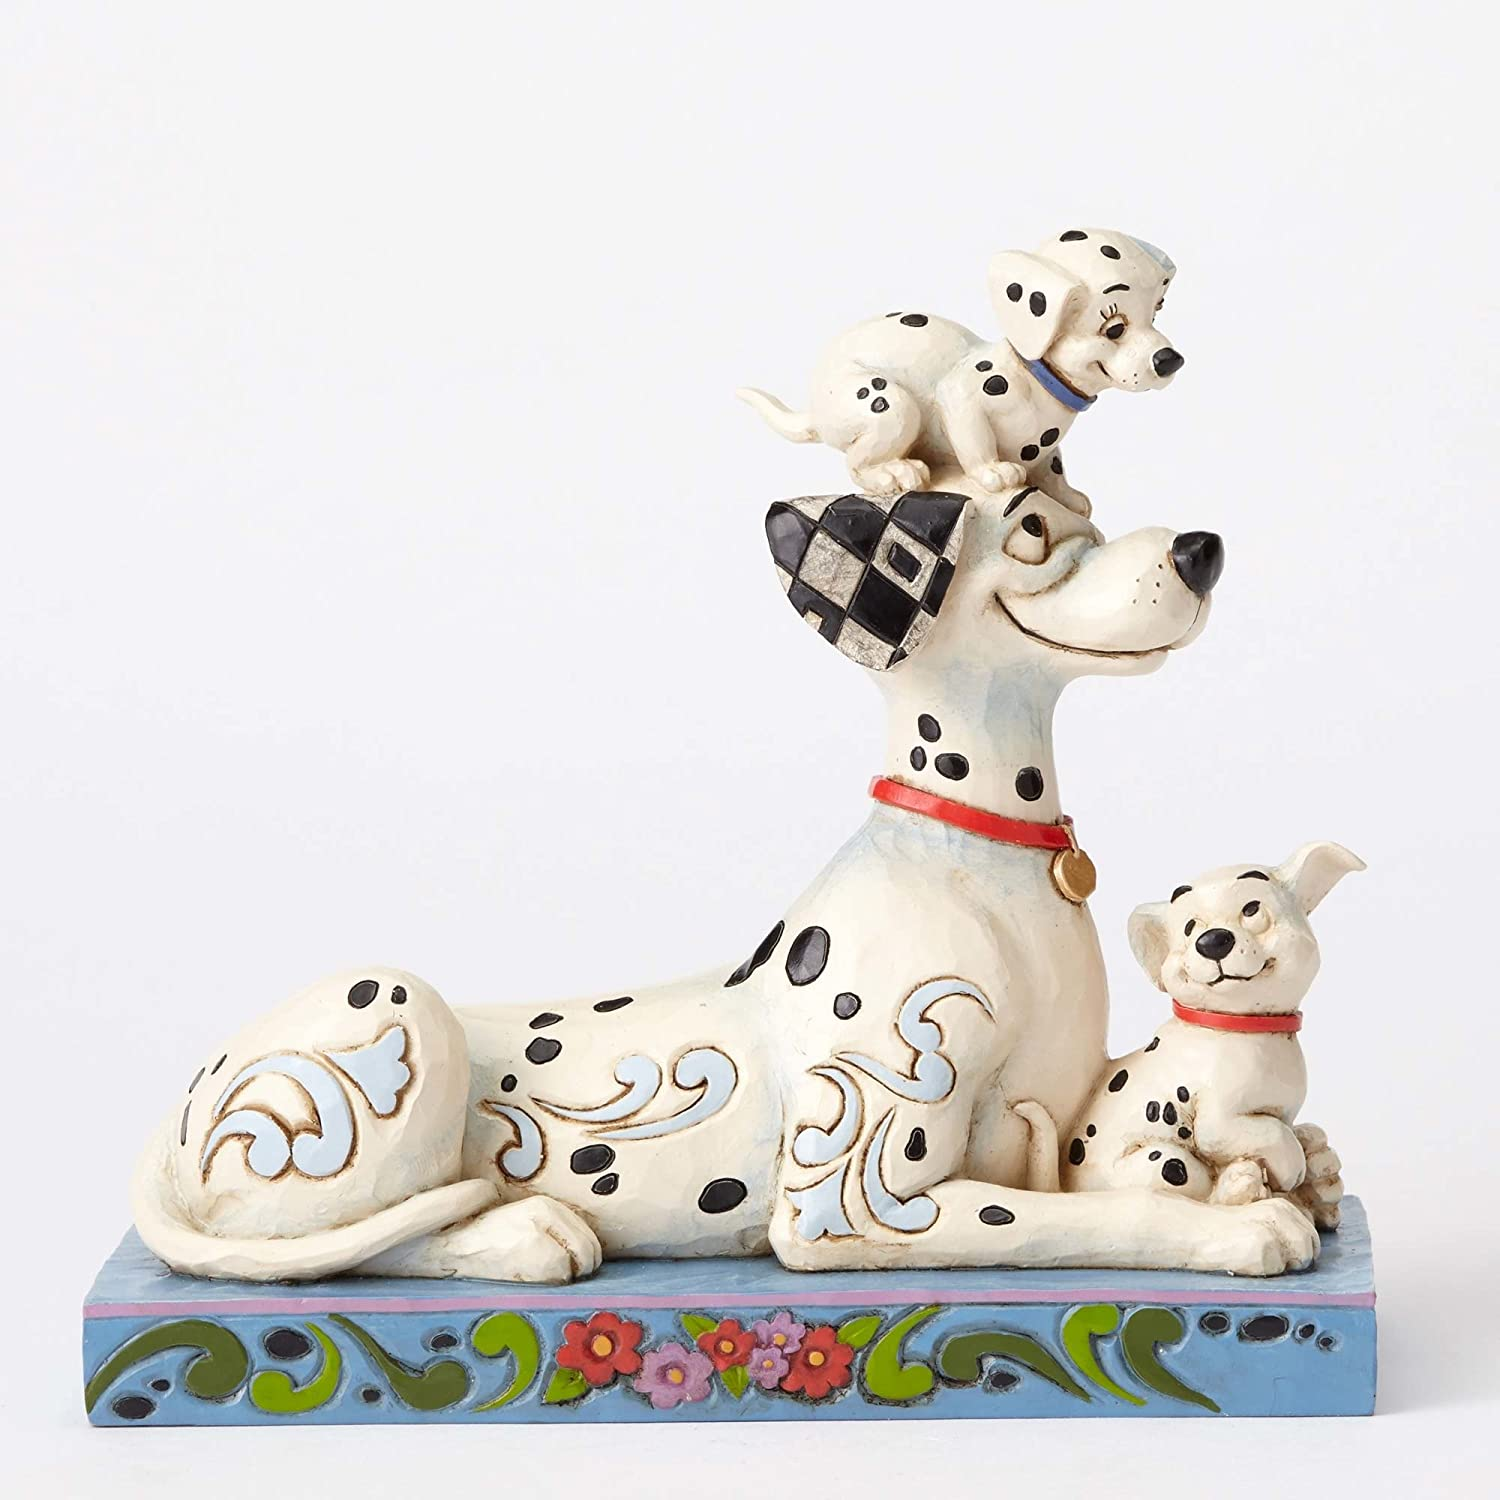 Disney Traditions by Jim Shore 101 Dalmatians 55th Anniversary Stone Resin Figurine, 6.25